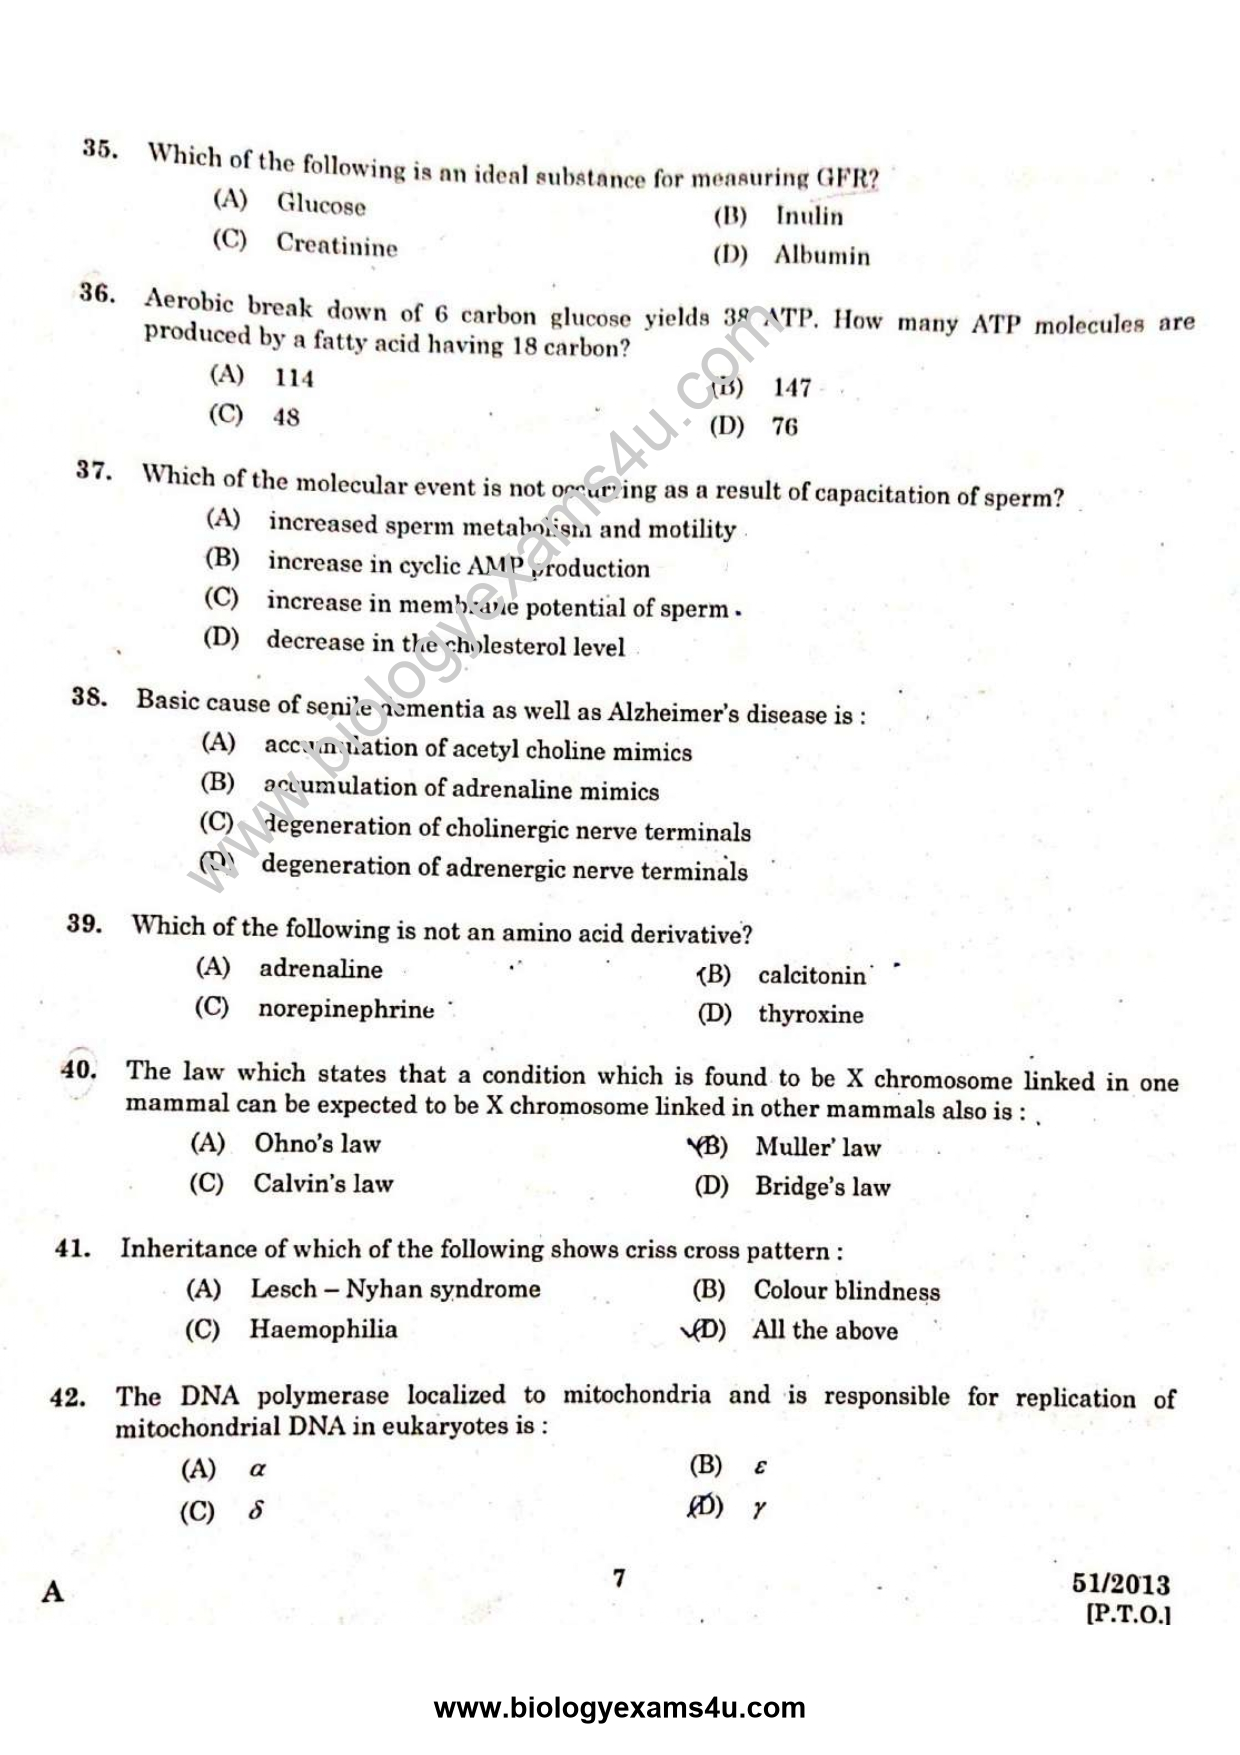 Scientific Officer Biology - Question Paper with Answer Key 51/2013